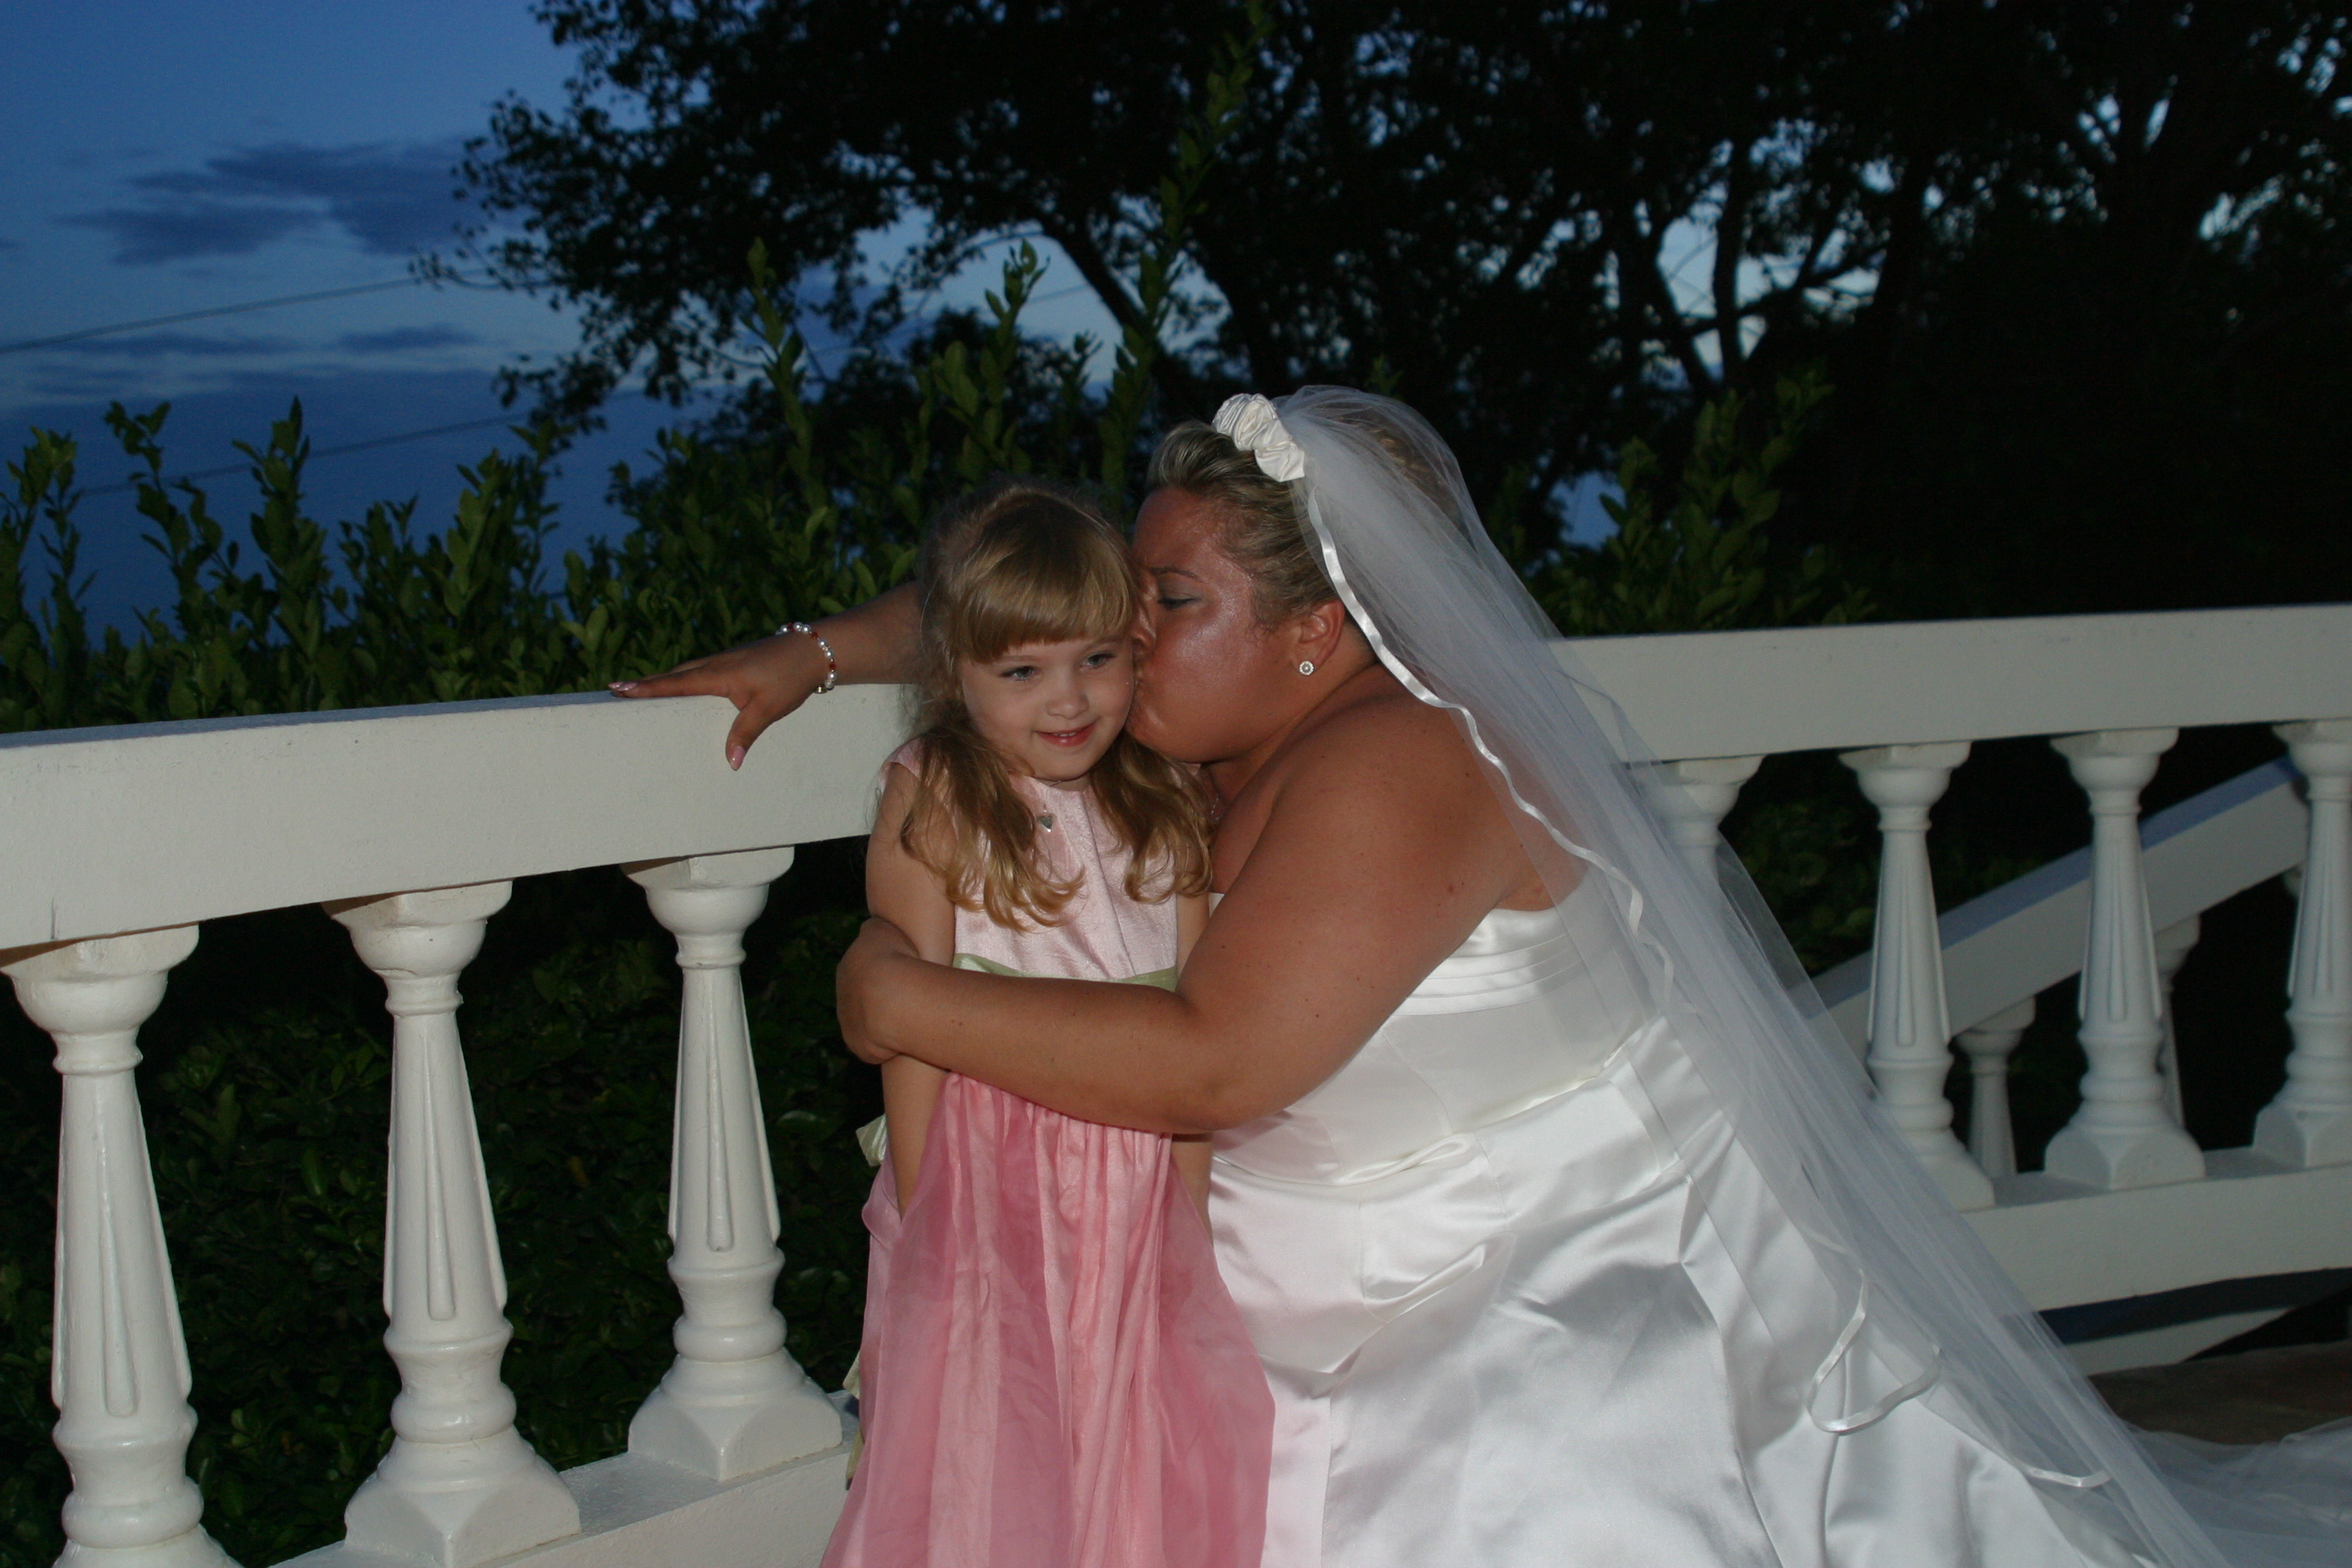 What Are The Appropriate Ages And Roles For Children In A Wedding